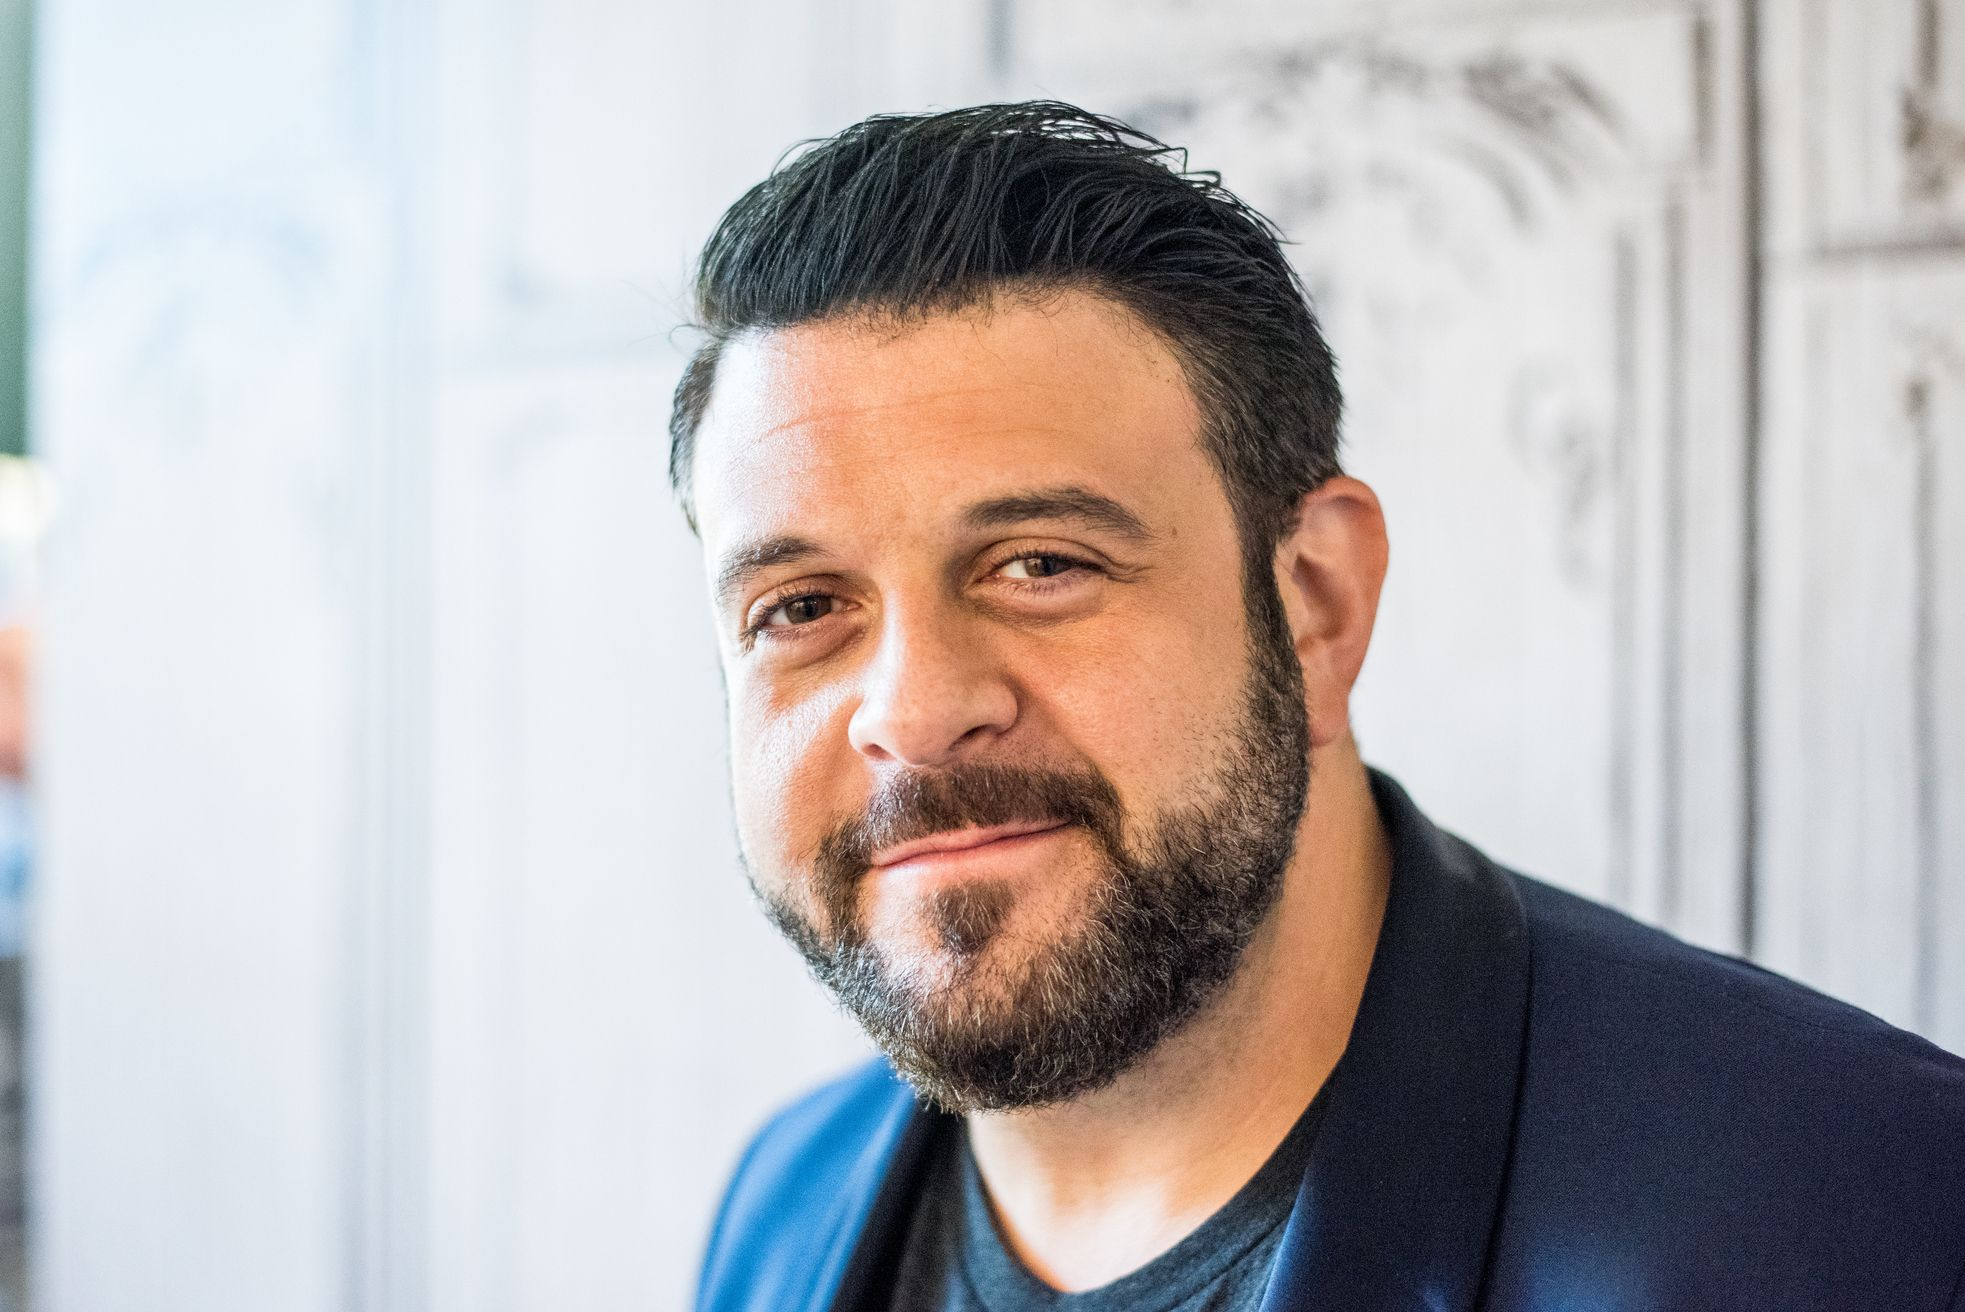 Adam Champ adam richman: 'food snobs don't like me or my shows - i'm